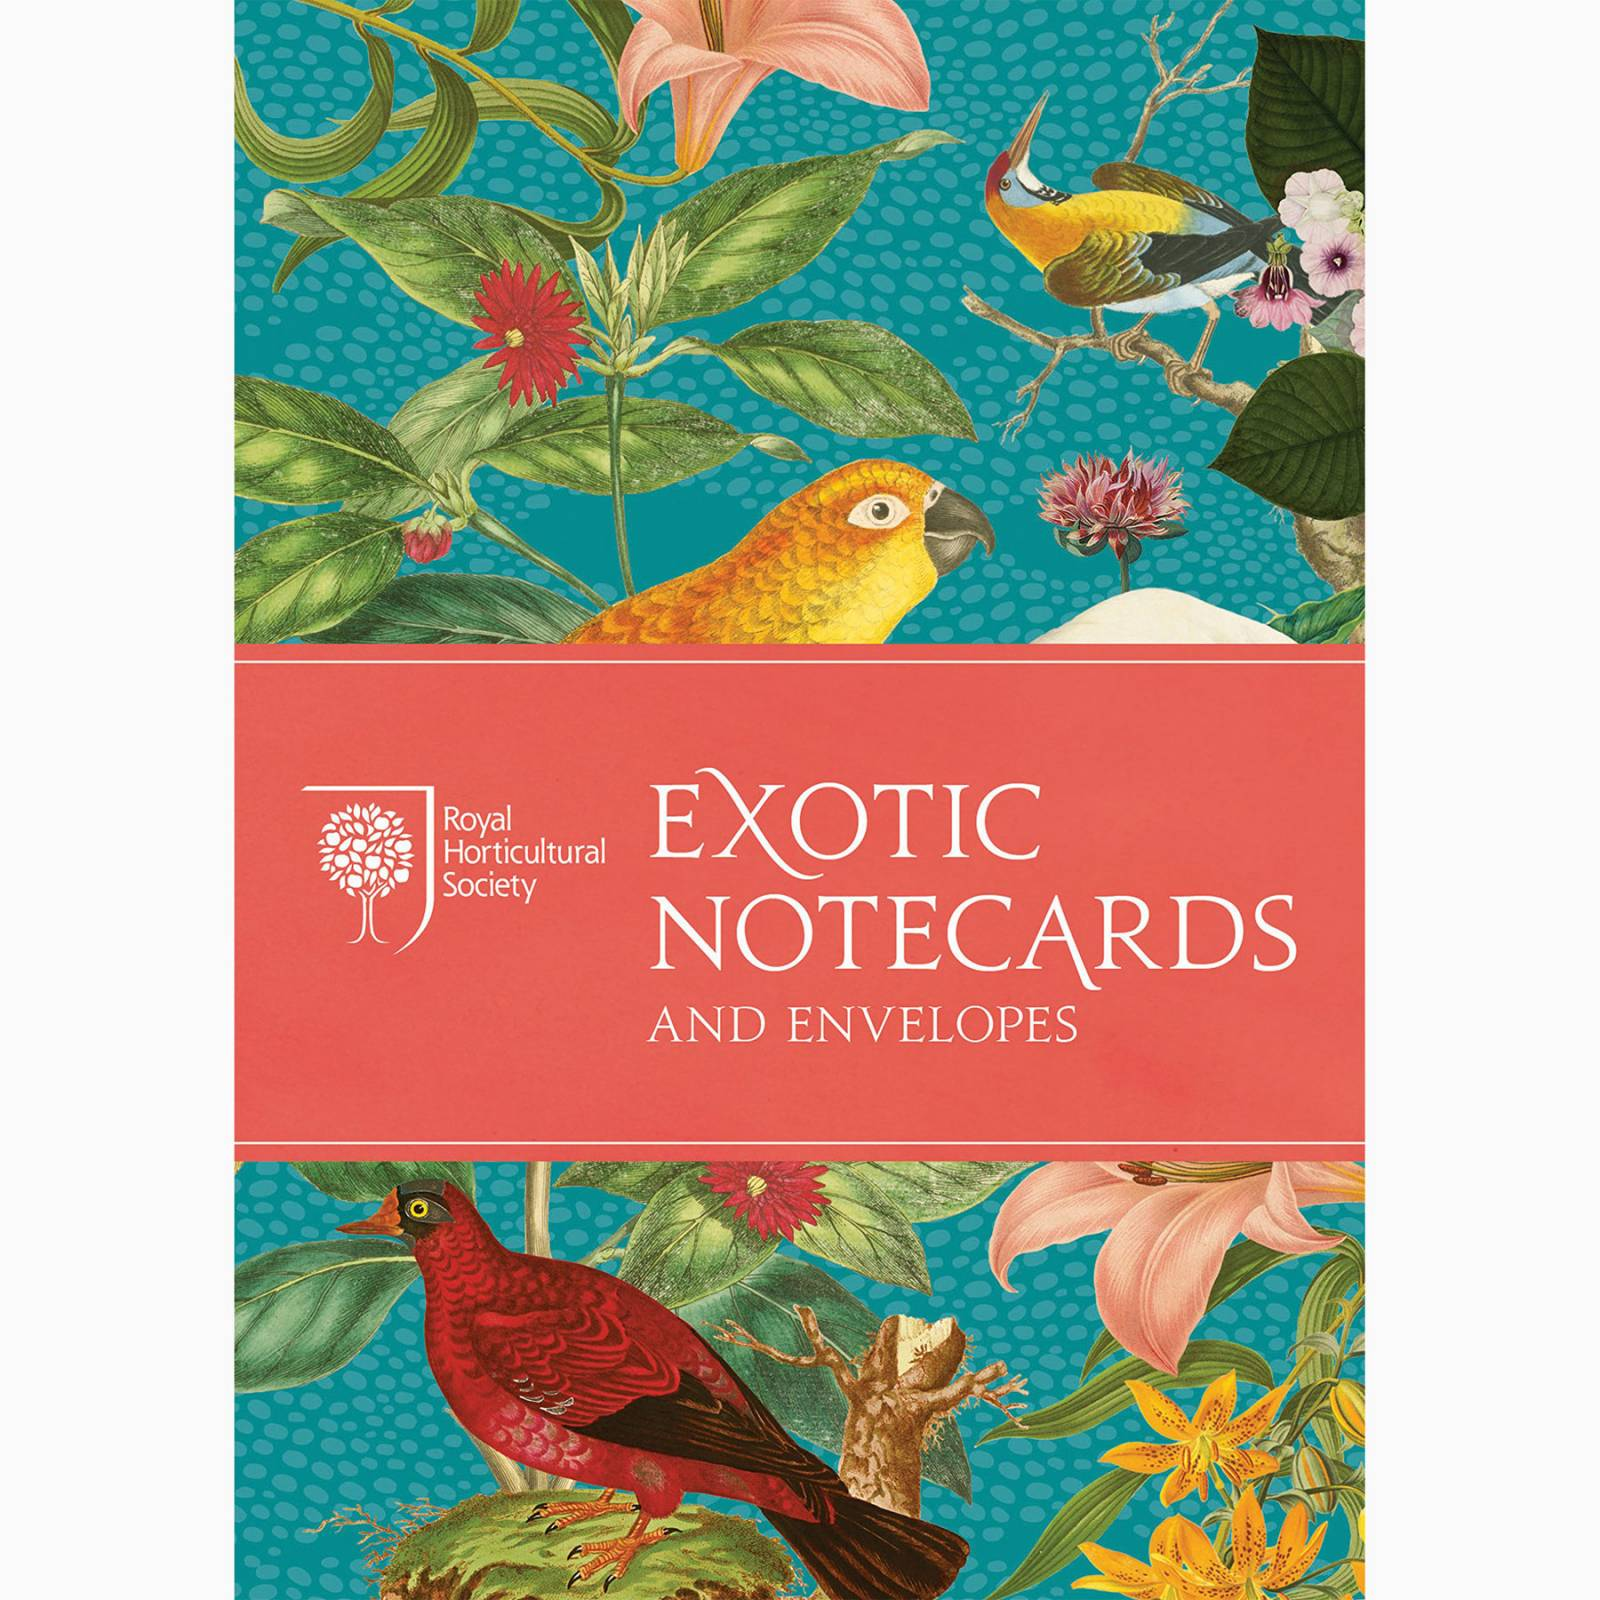 RHS Exotic Notecards - Box Set Of 10 Notecards